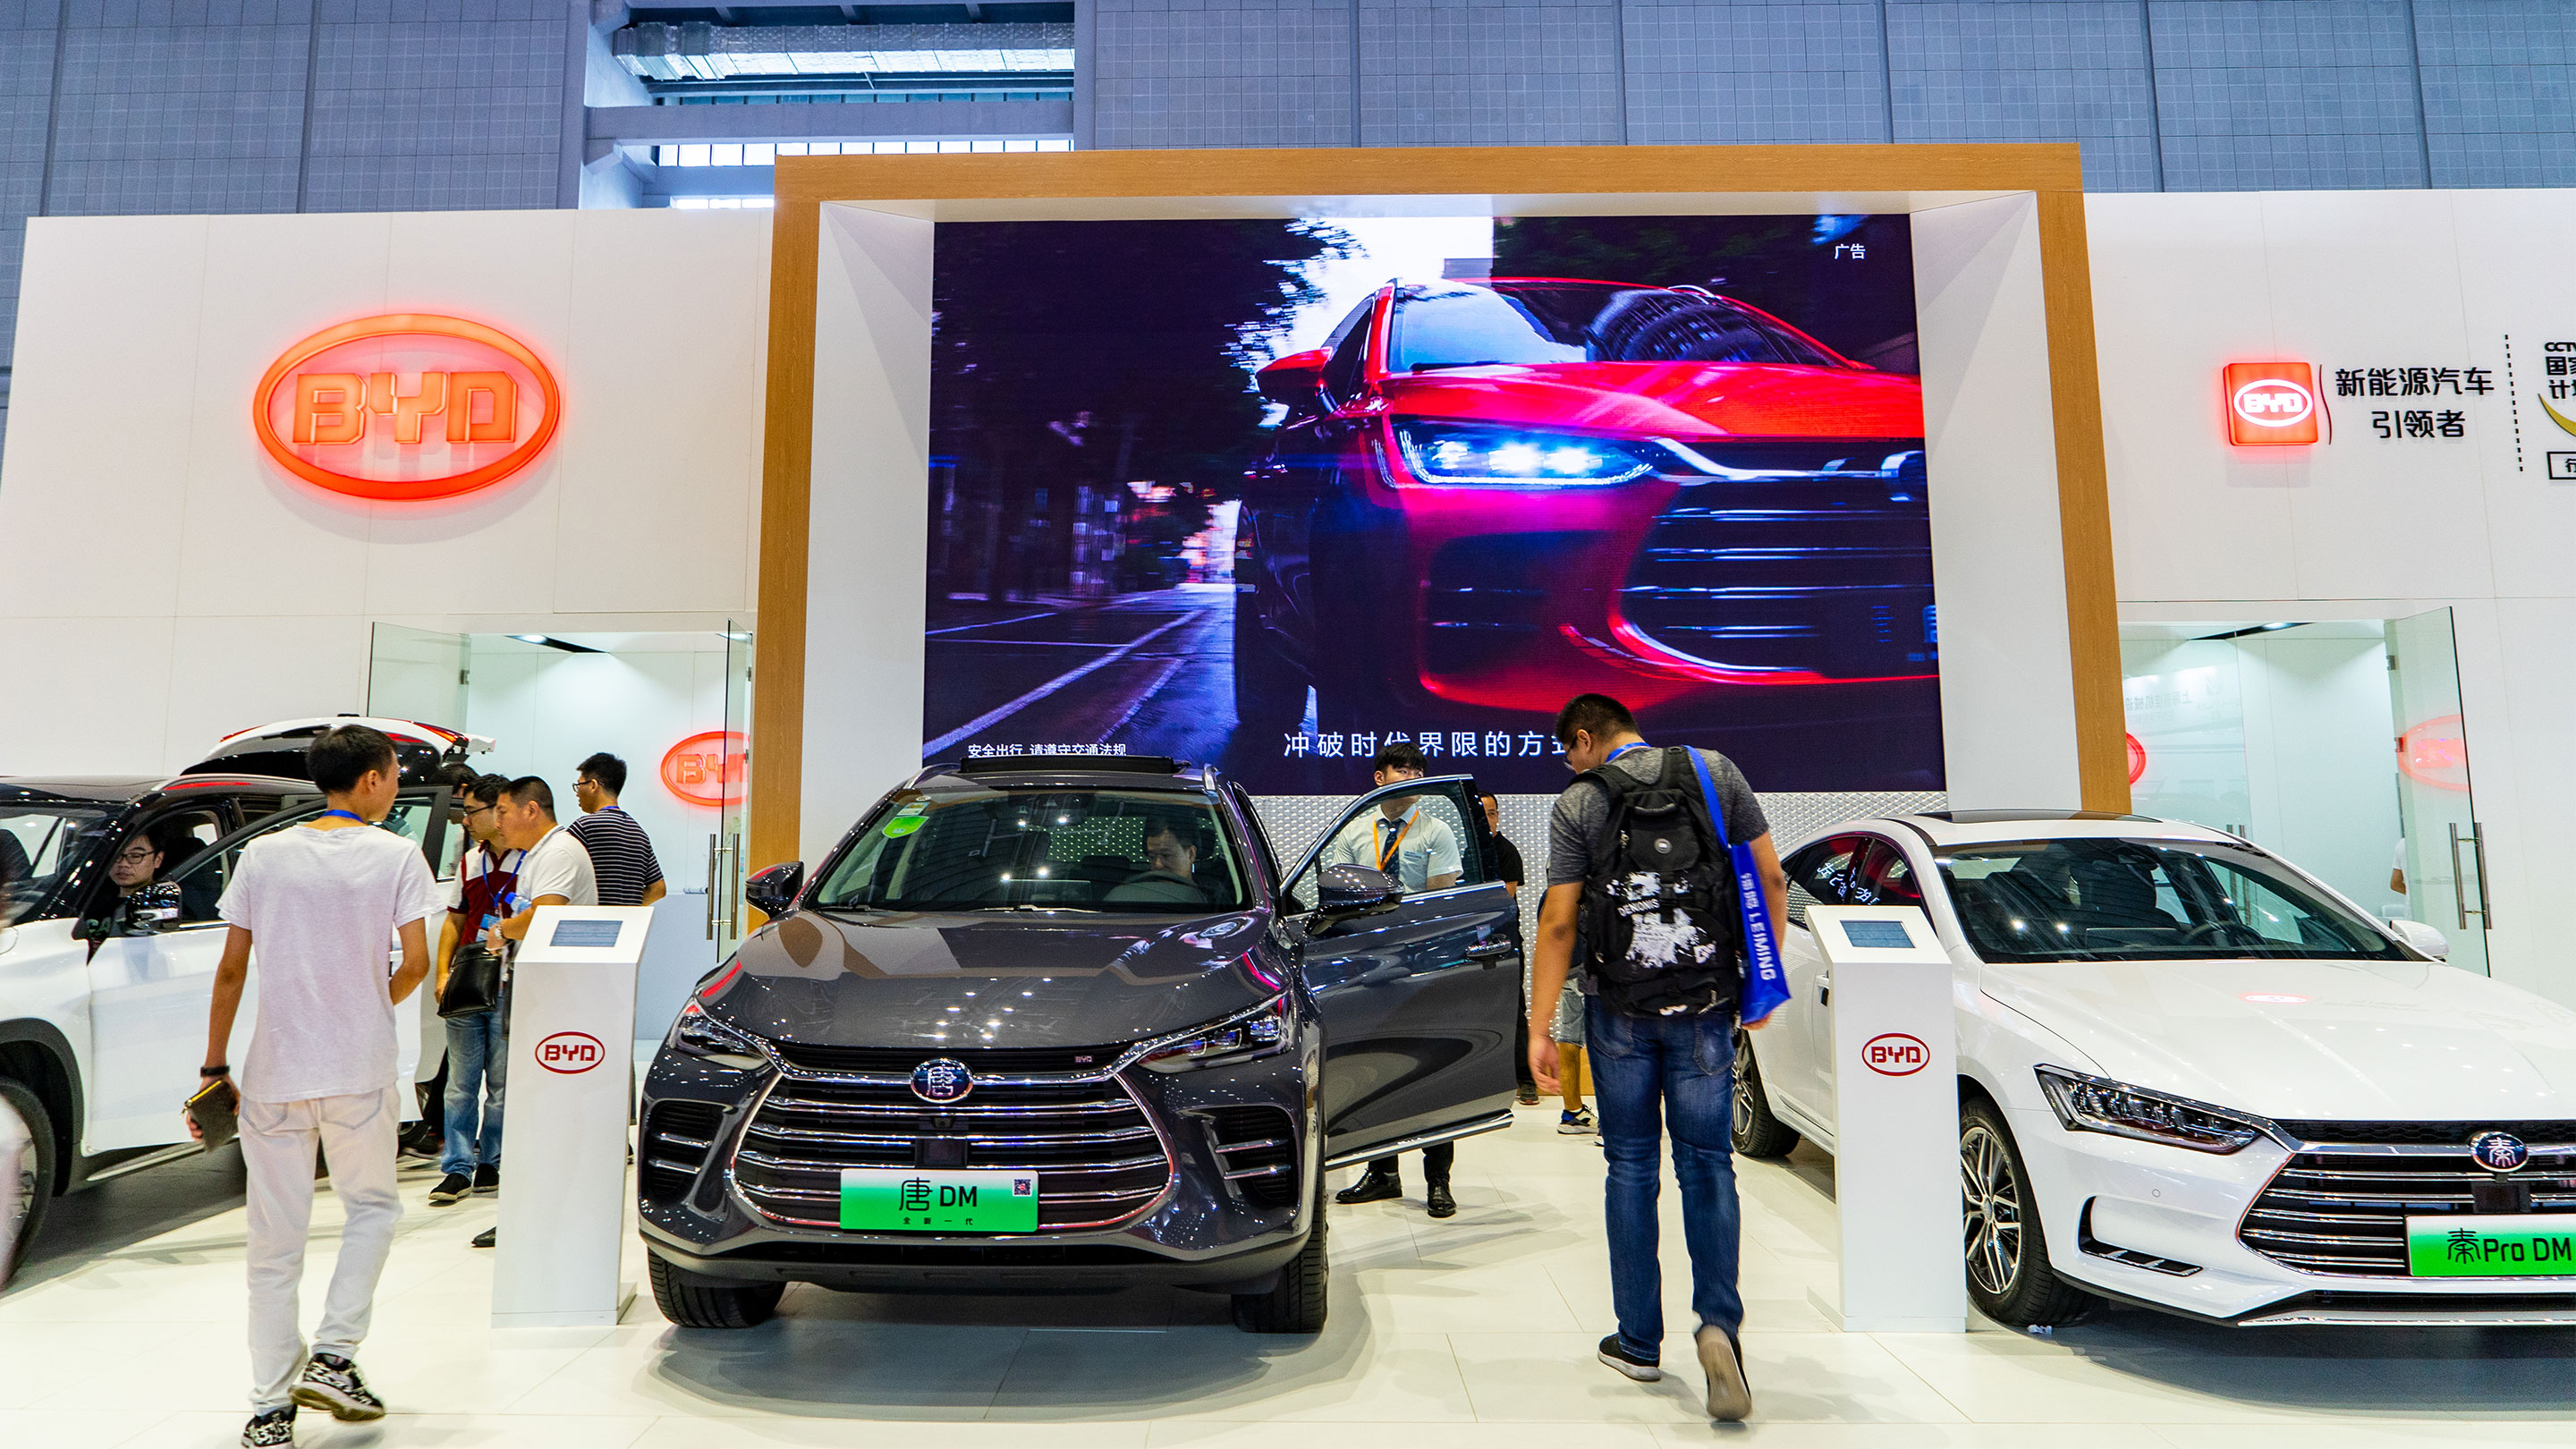 BYD Company | Fortune